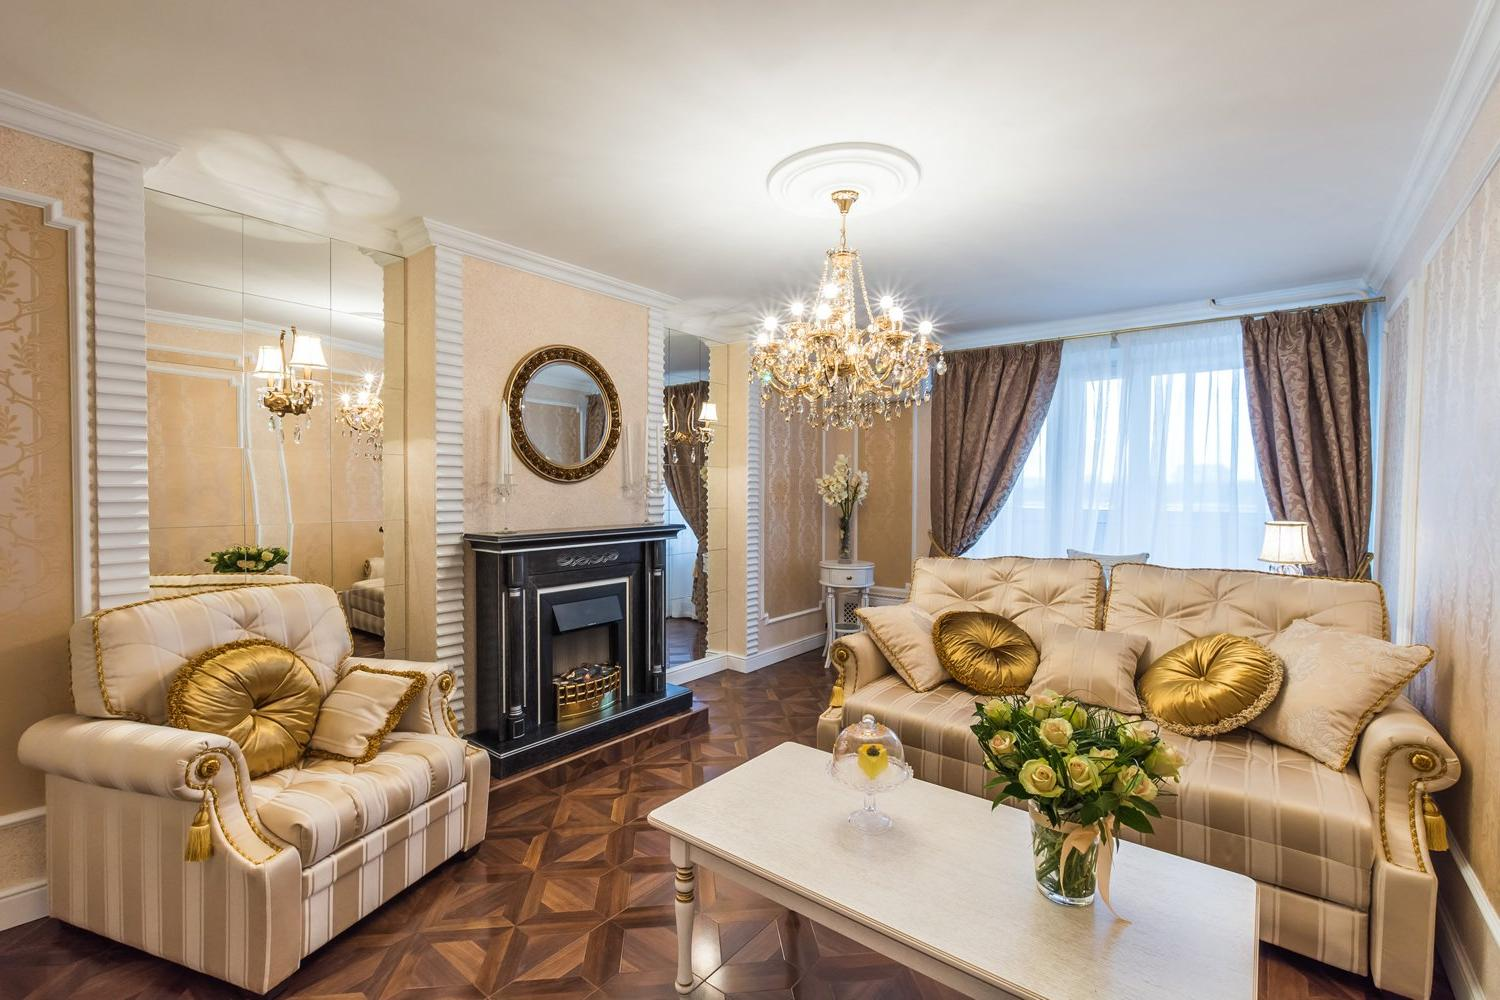 Traditional Interior Design Ideas: Lightweight Classics. Large grandeur designed living room with accent electric fireplace